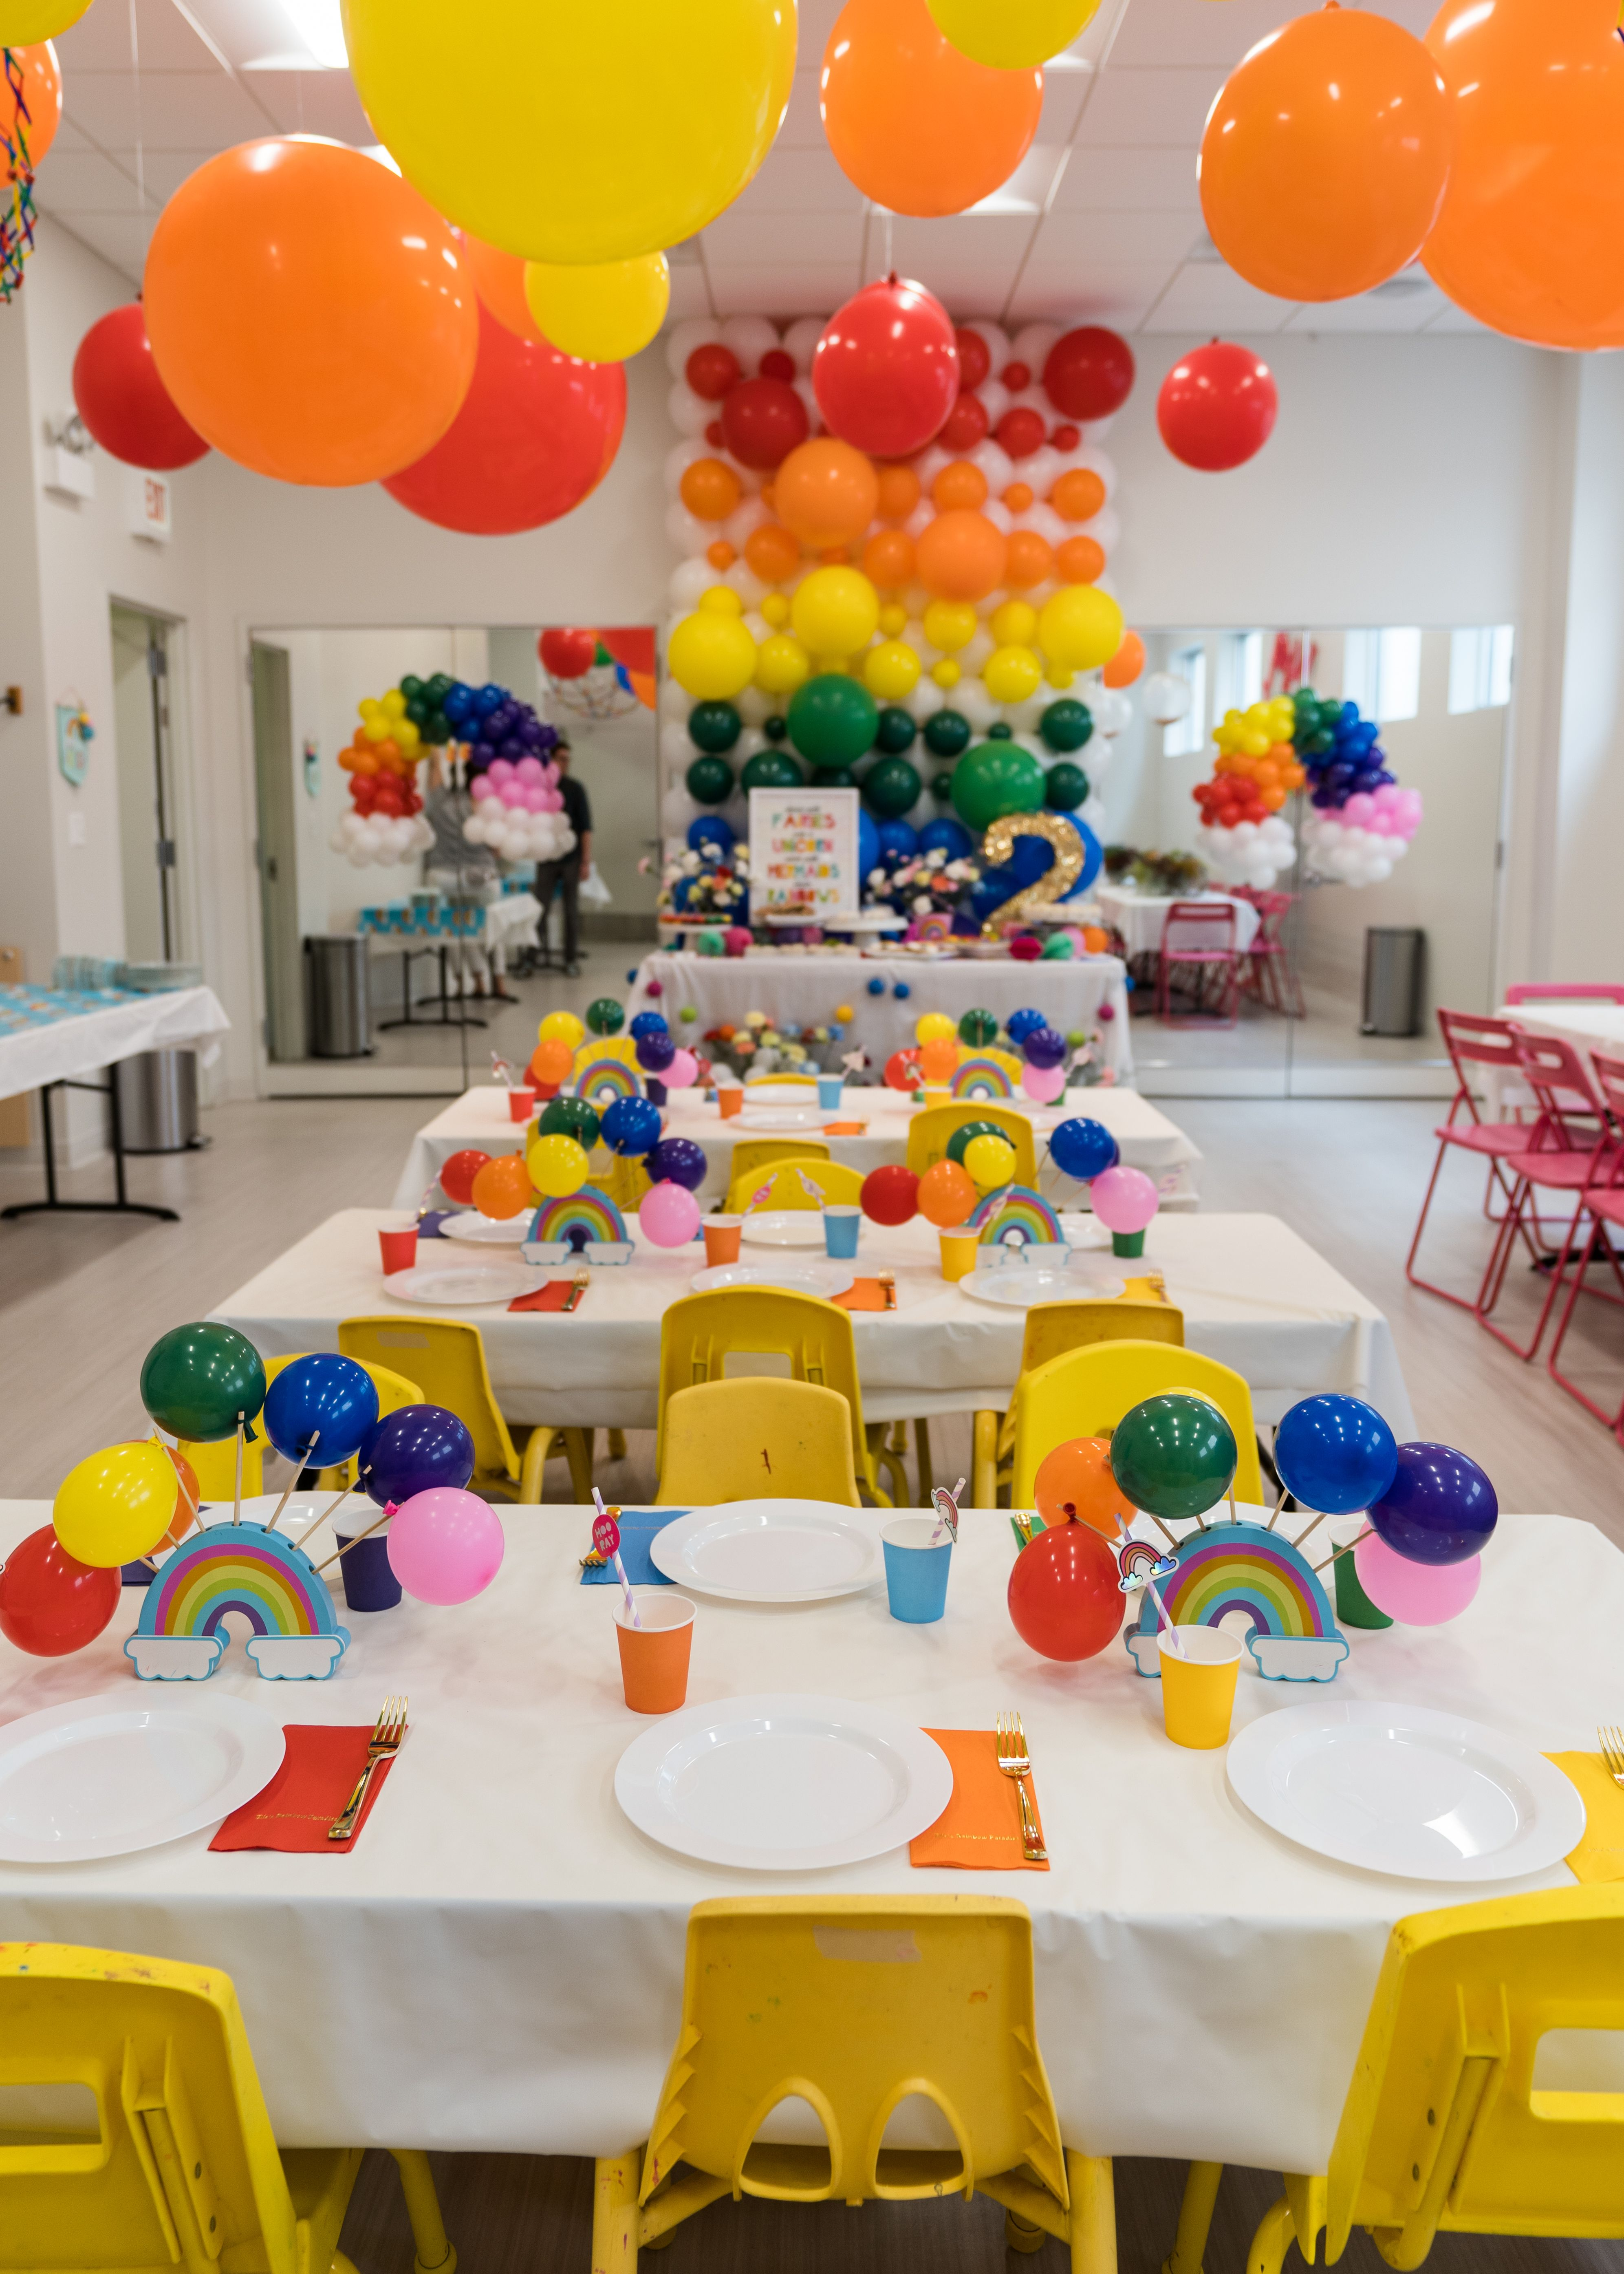 Rainbow Themed Birthday Party At Bubbles Academy Chicago Designed By Gromeza Designgs